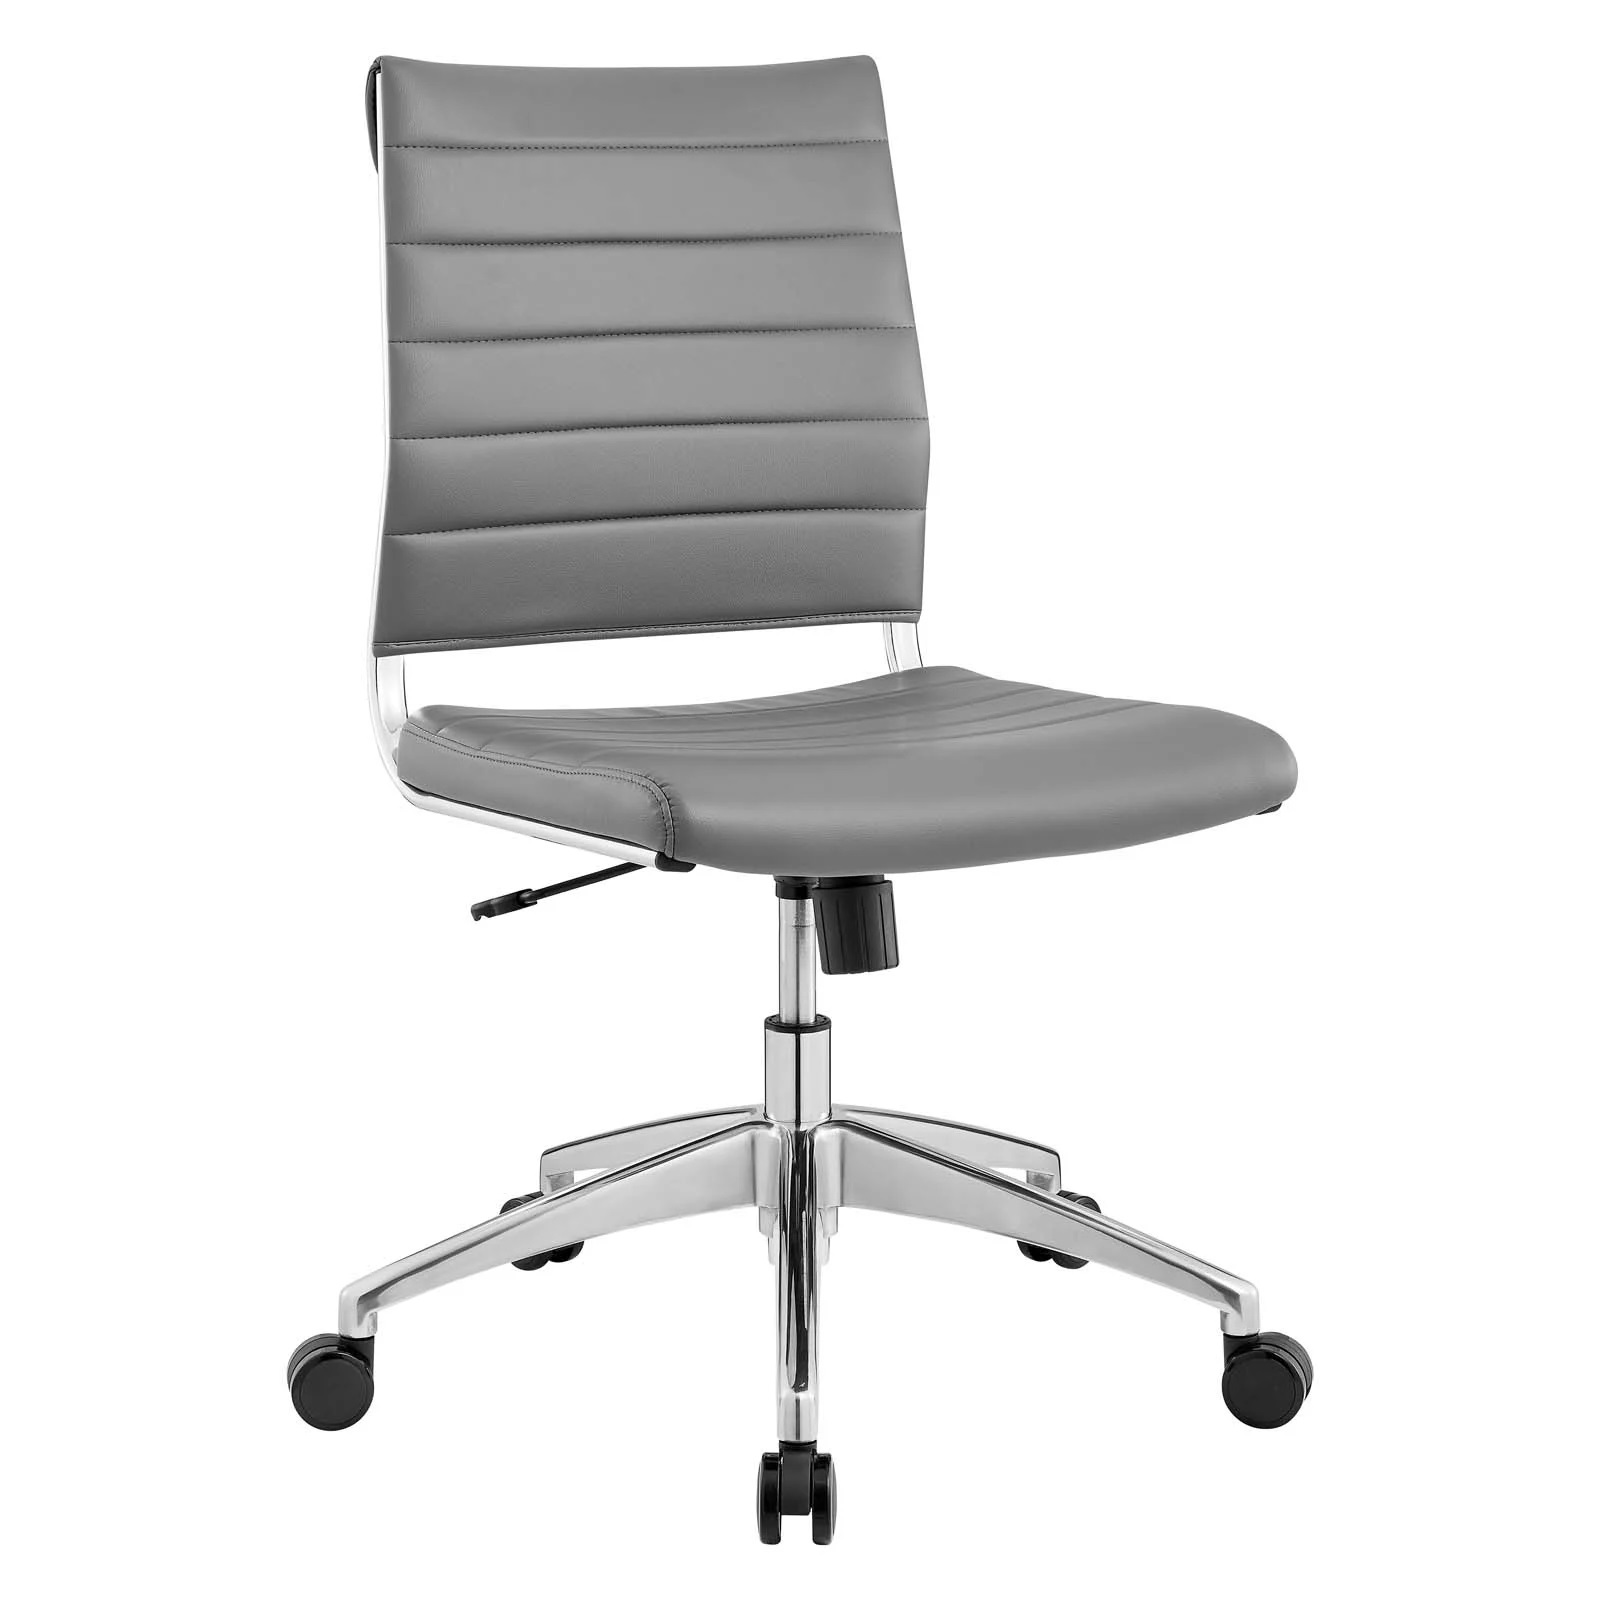 Armless Mid Back Office Chair in Gray